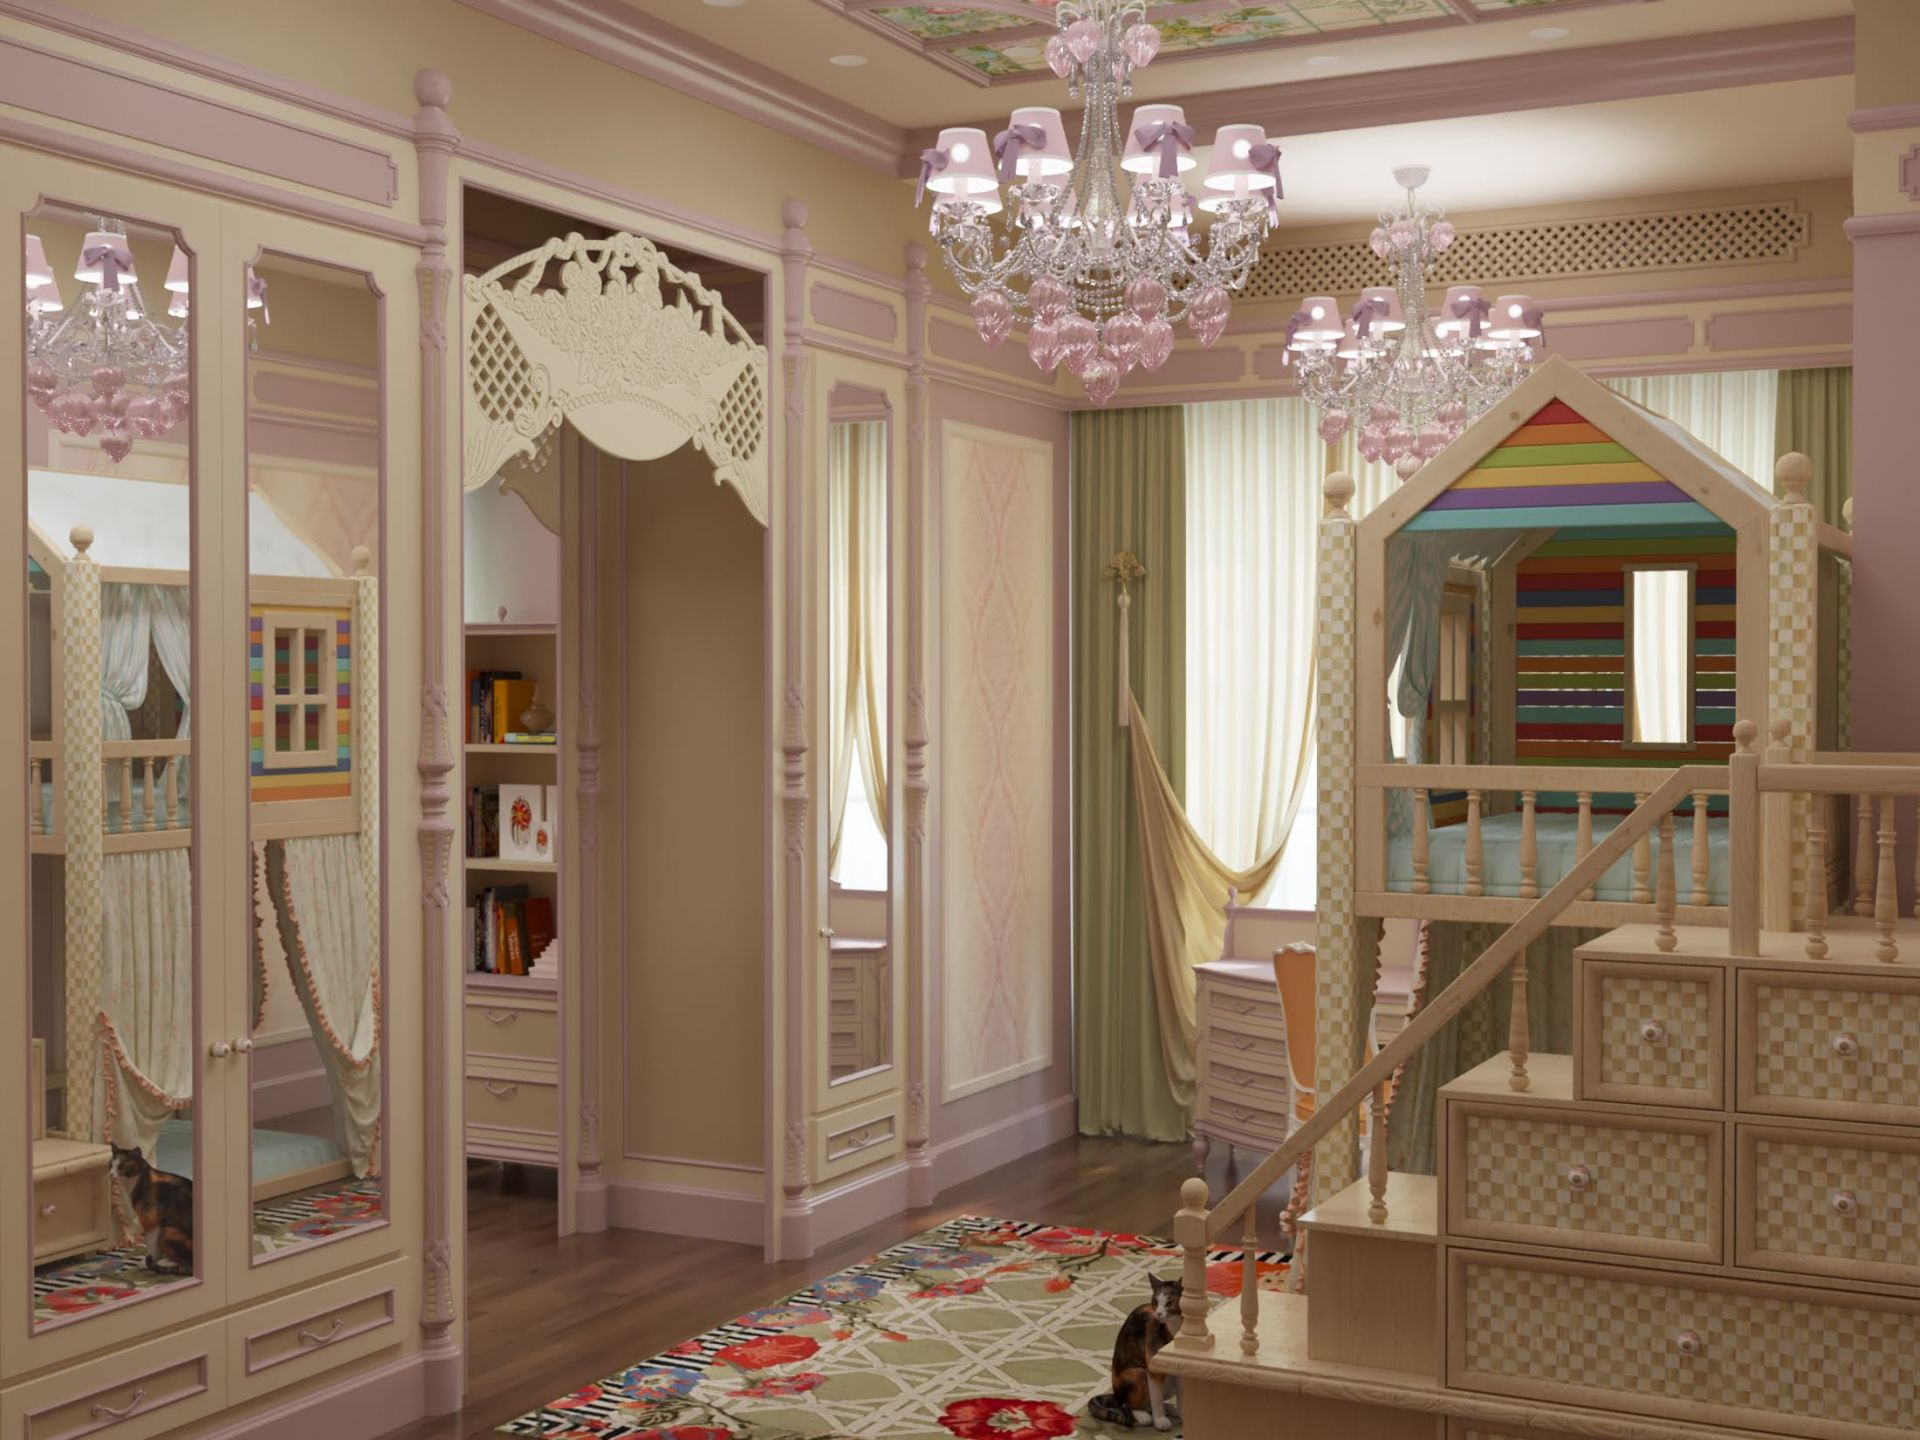 Design, Children's bedroom design